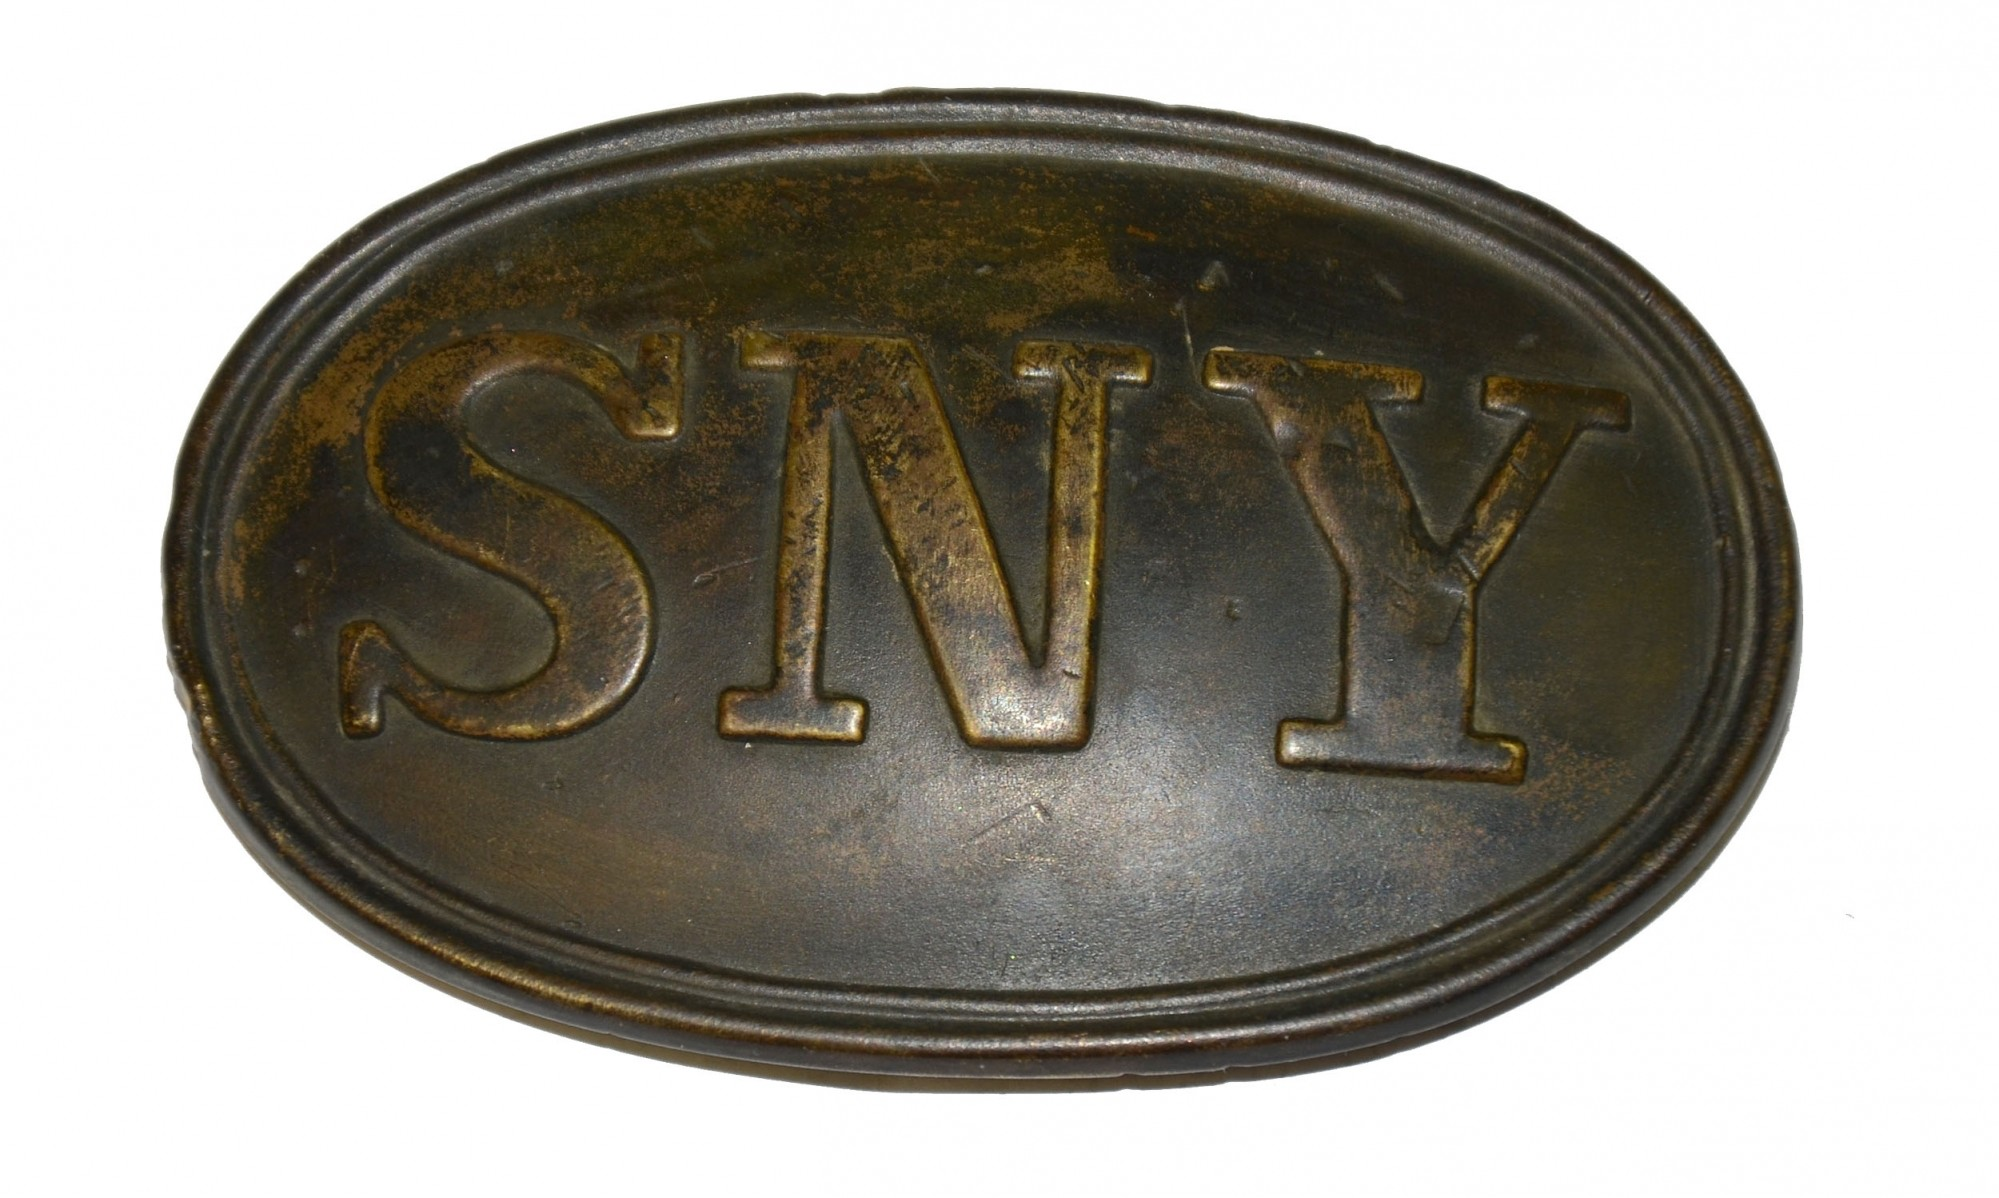 WONDERFUL CONDITION OVAL SNY WAIST BELT PLATE